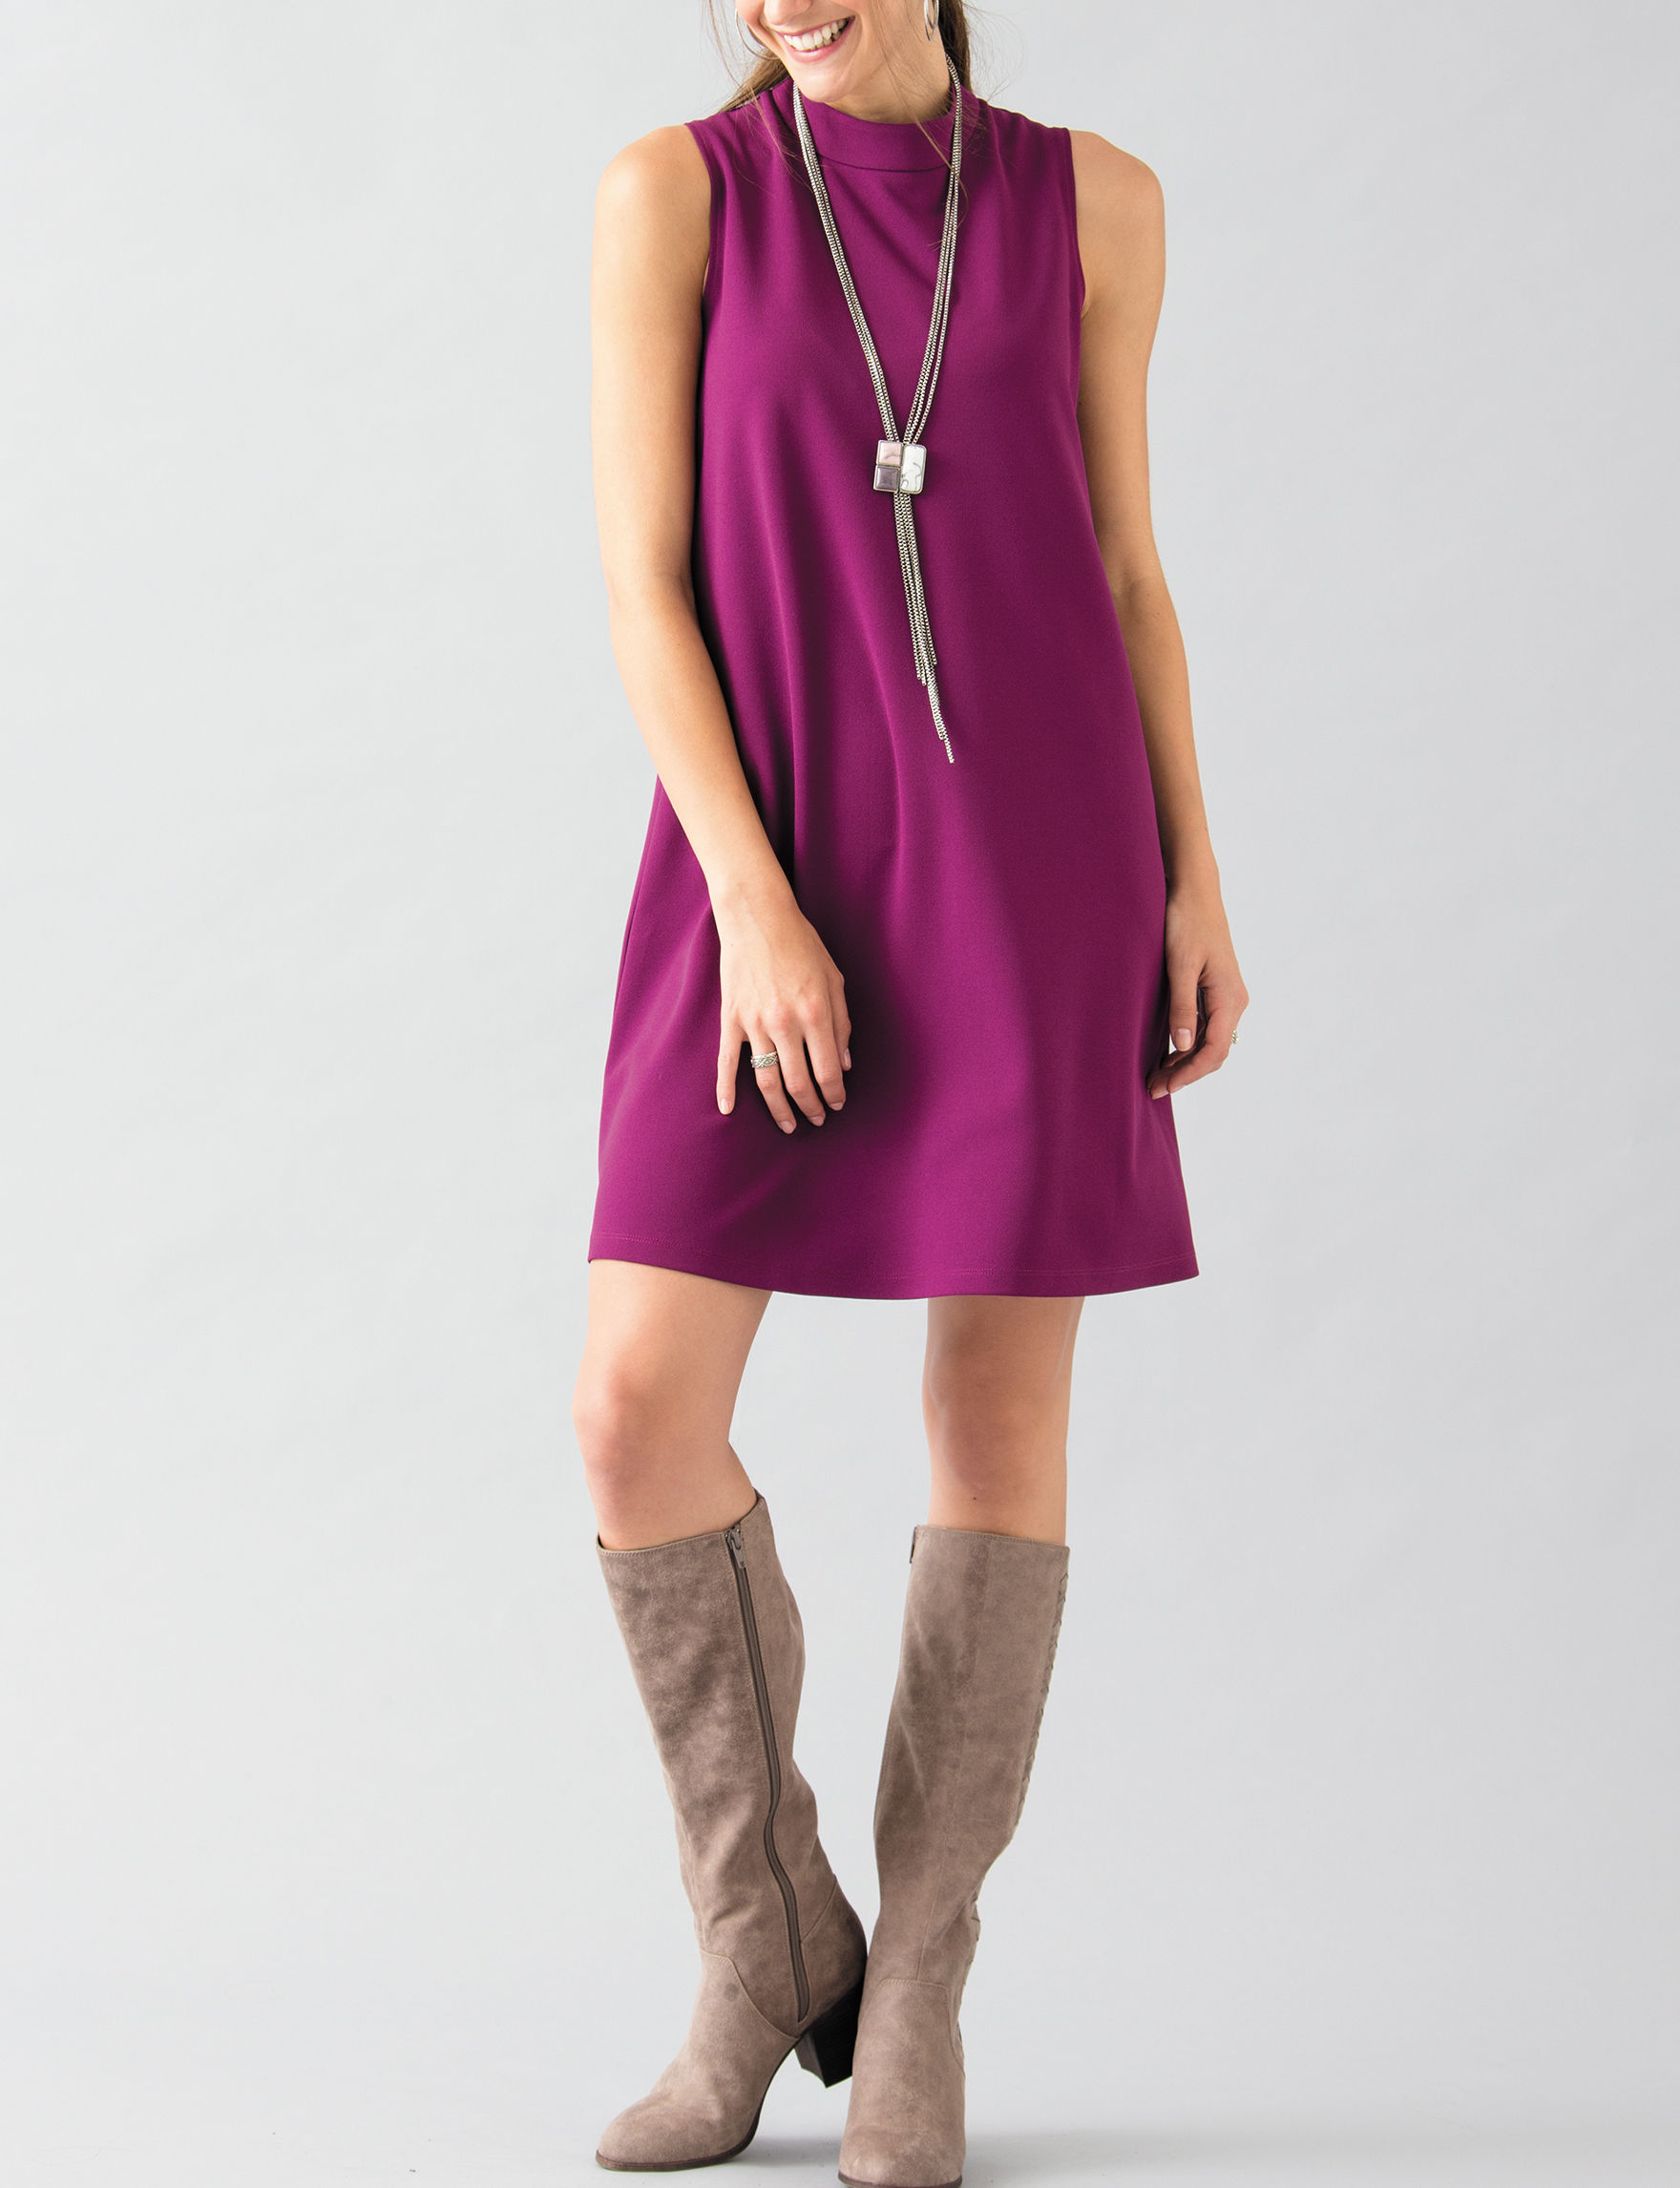 Ronni Nicole Purple Everyday & Casual Shift Dresses